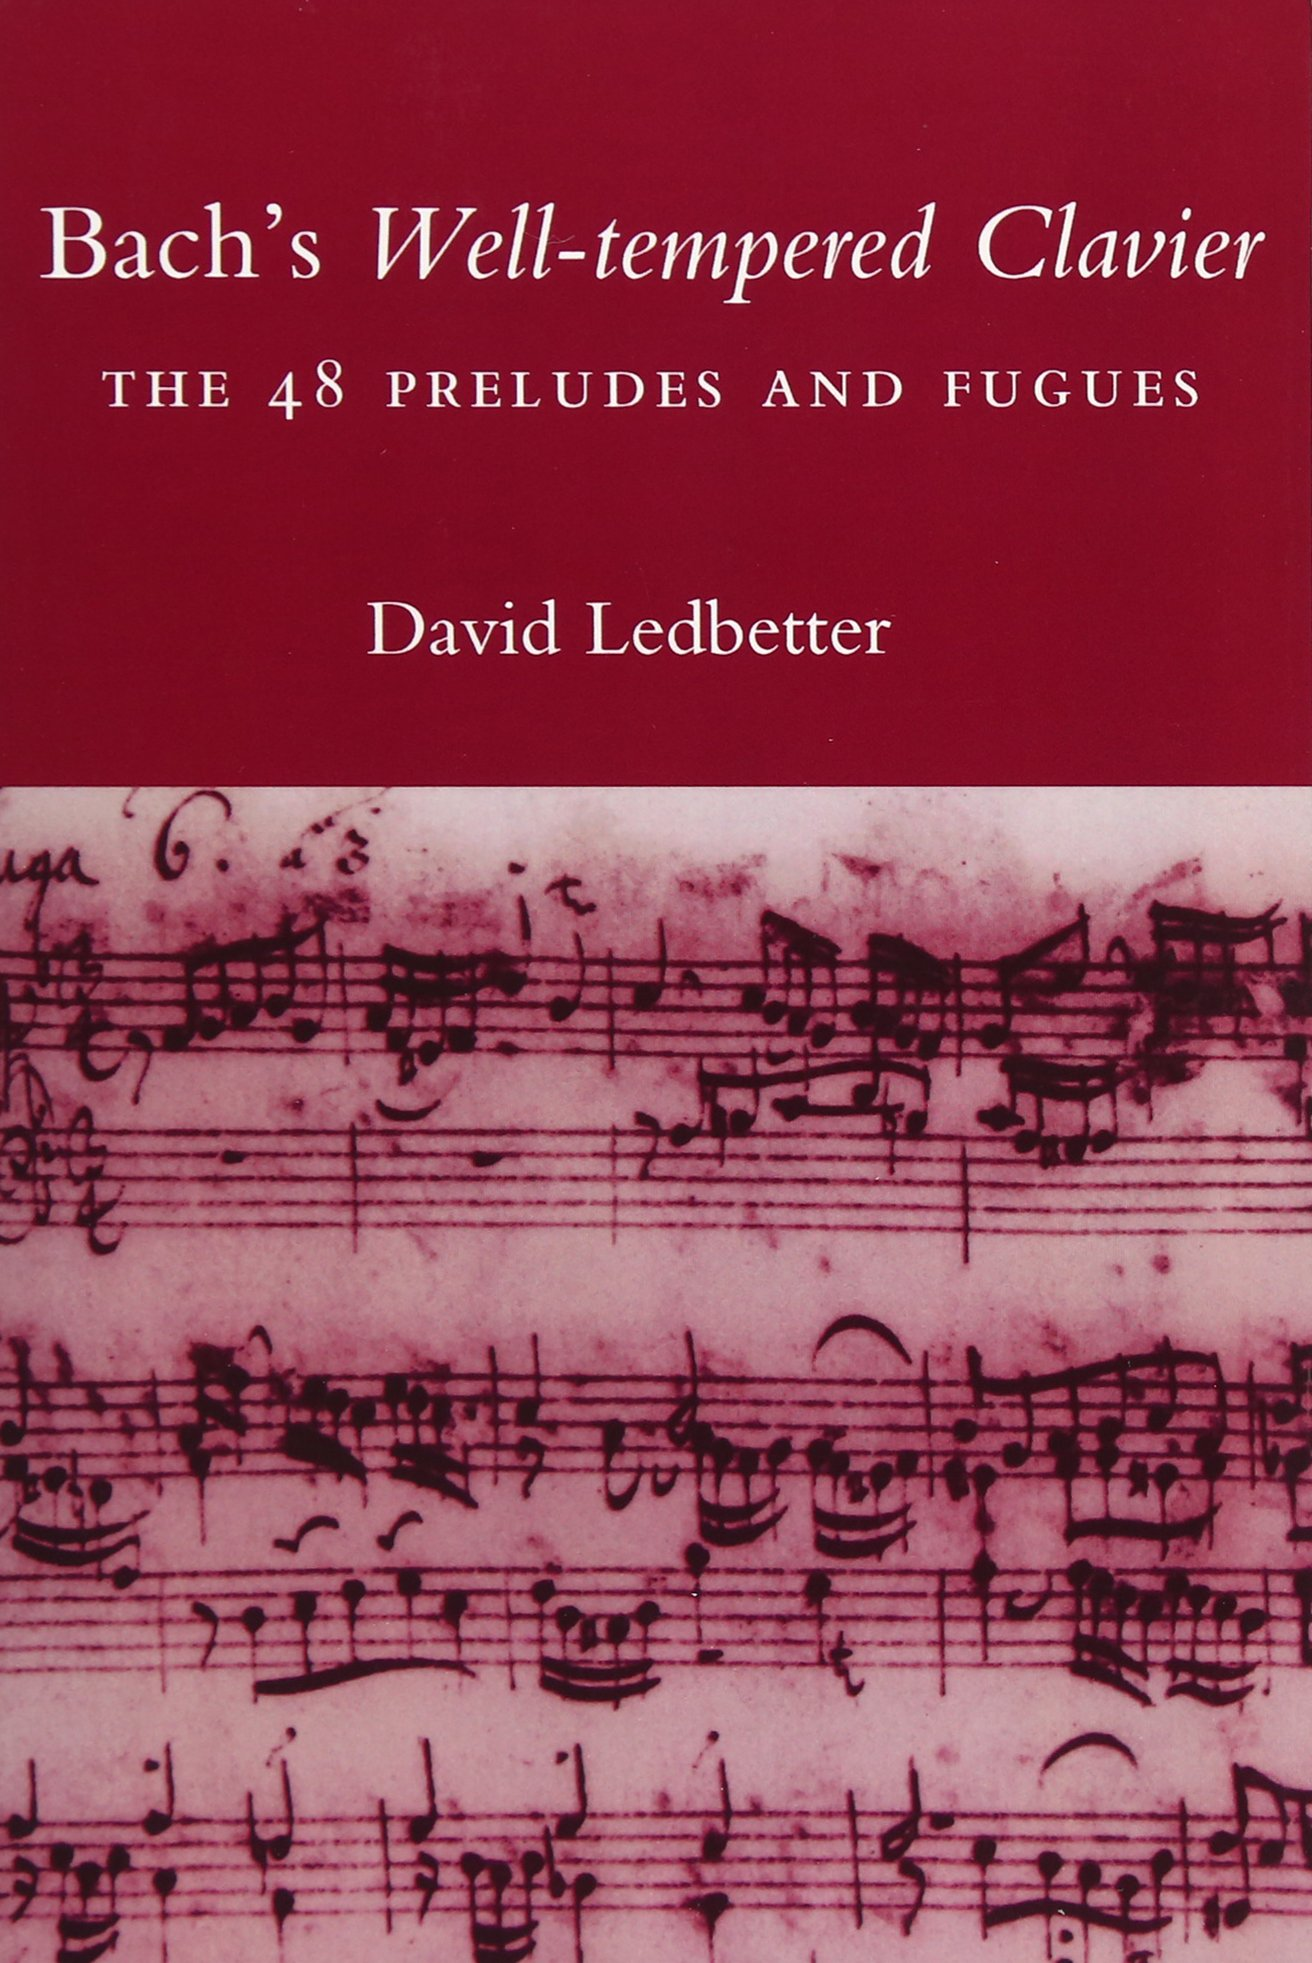 Read Online Bach's Well-tempered Clavier: The 48 Preludes and Fugues pdf epub